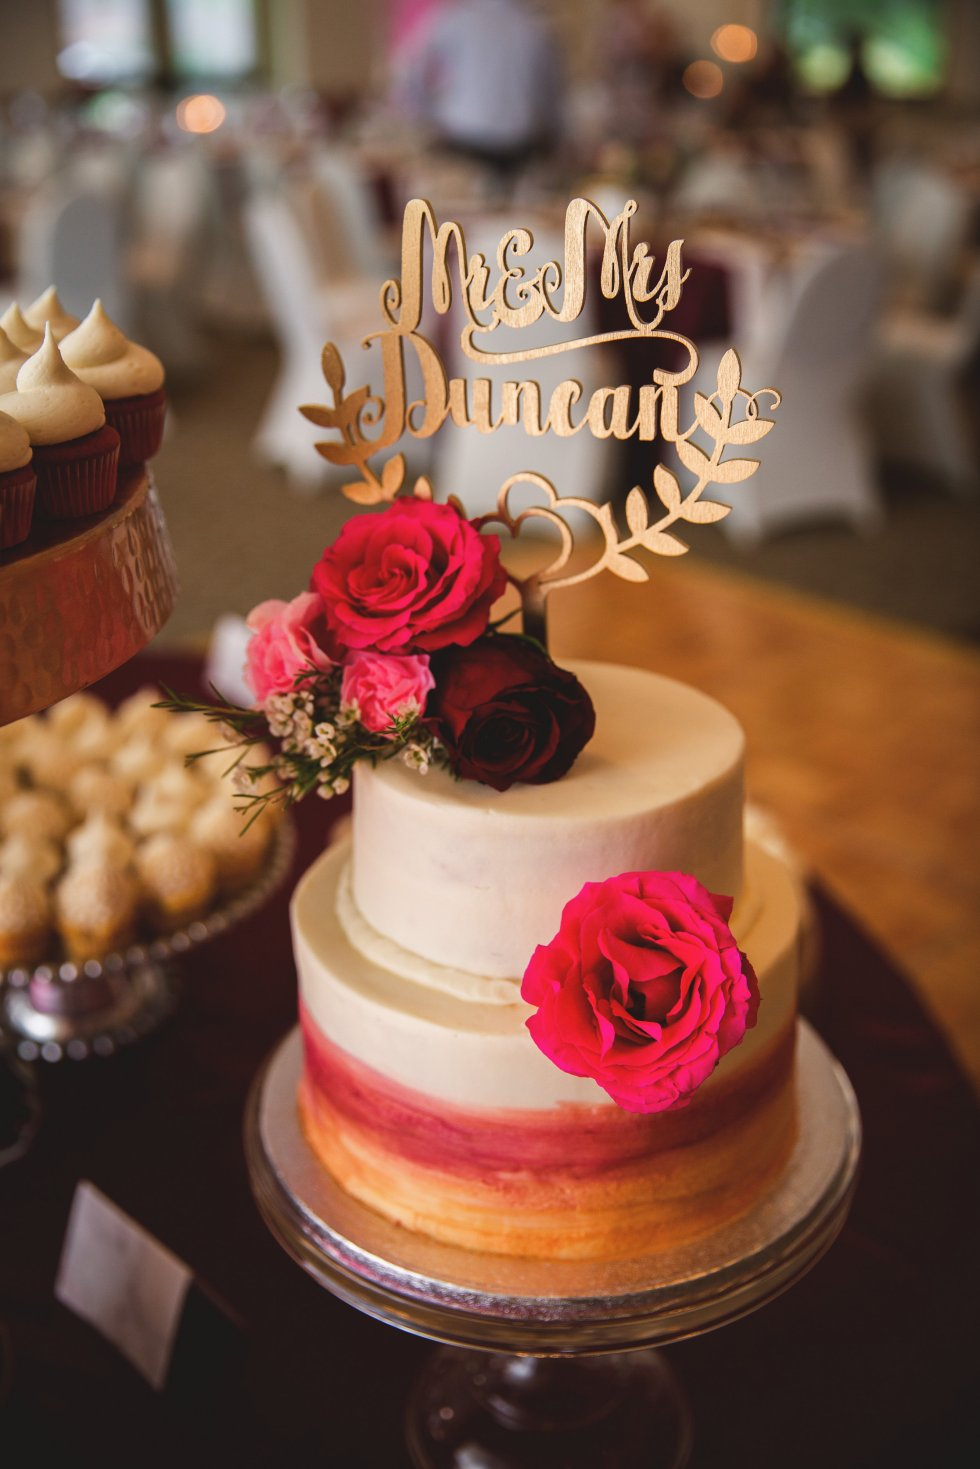 View More: http://sakphotography.pass.us/duncanwedding